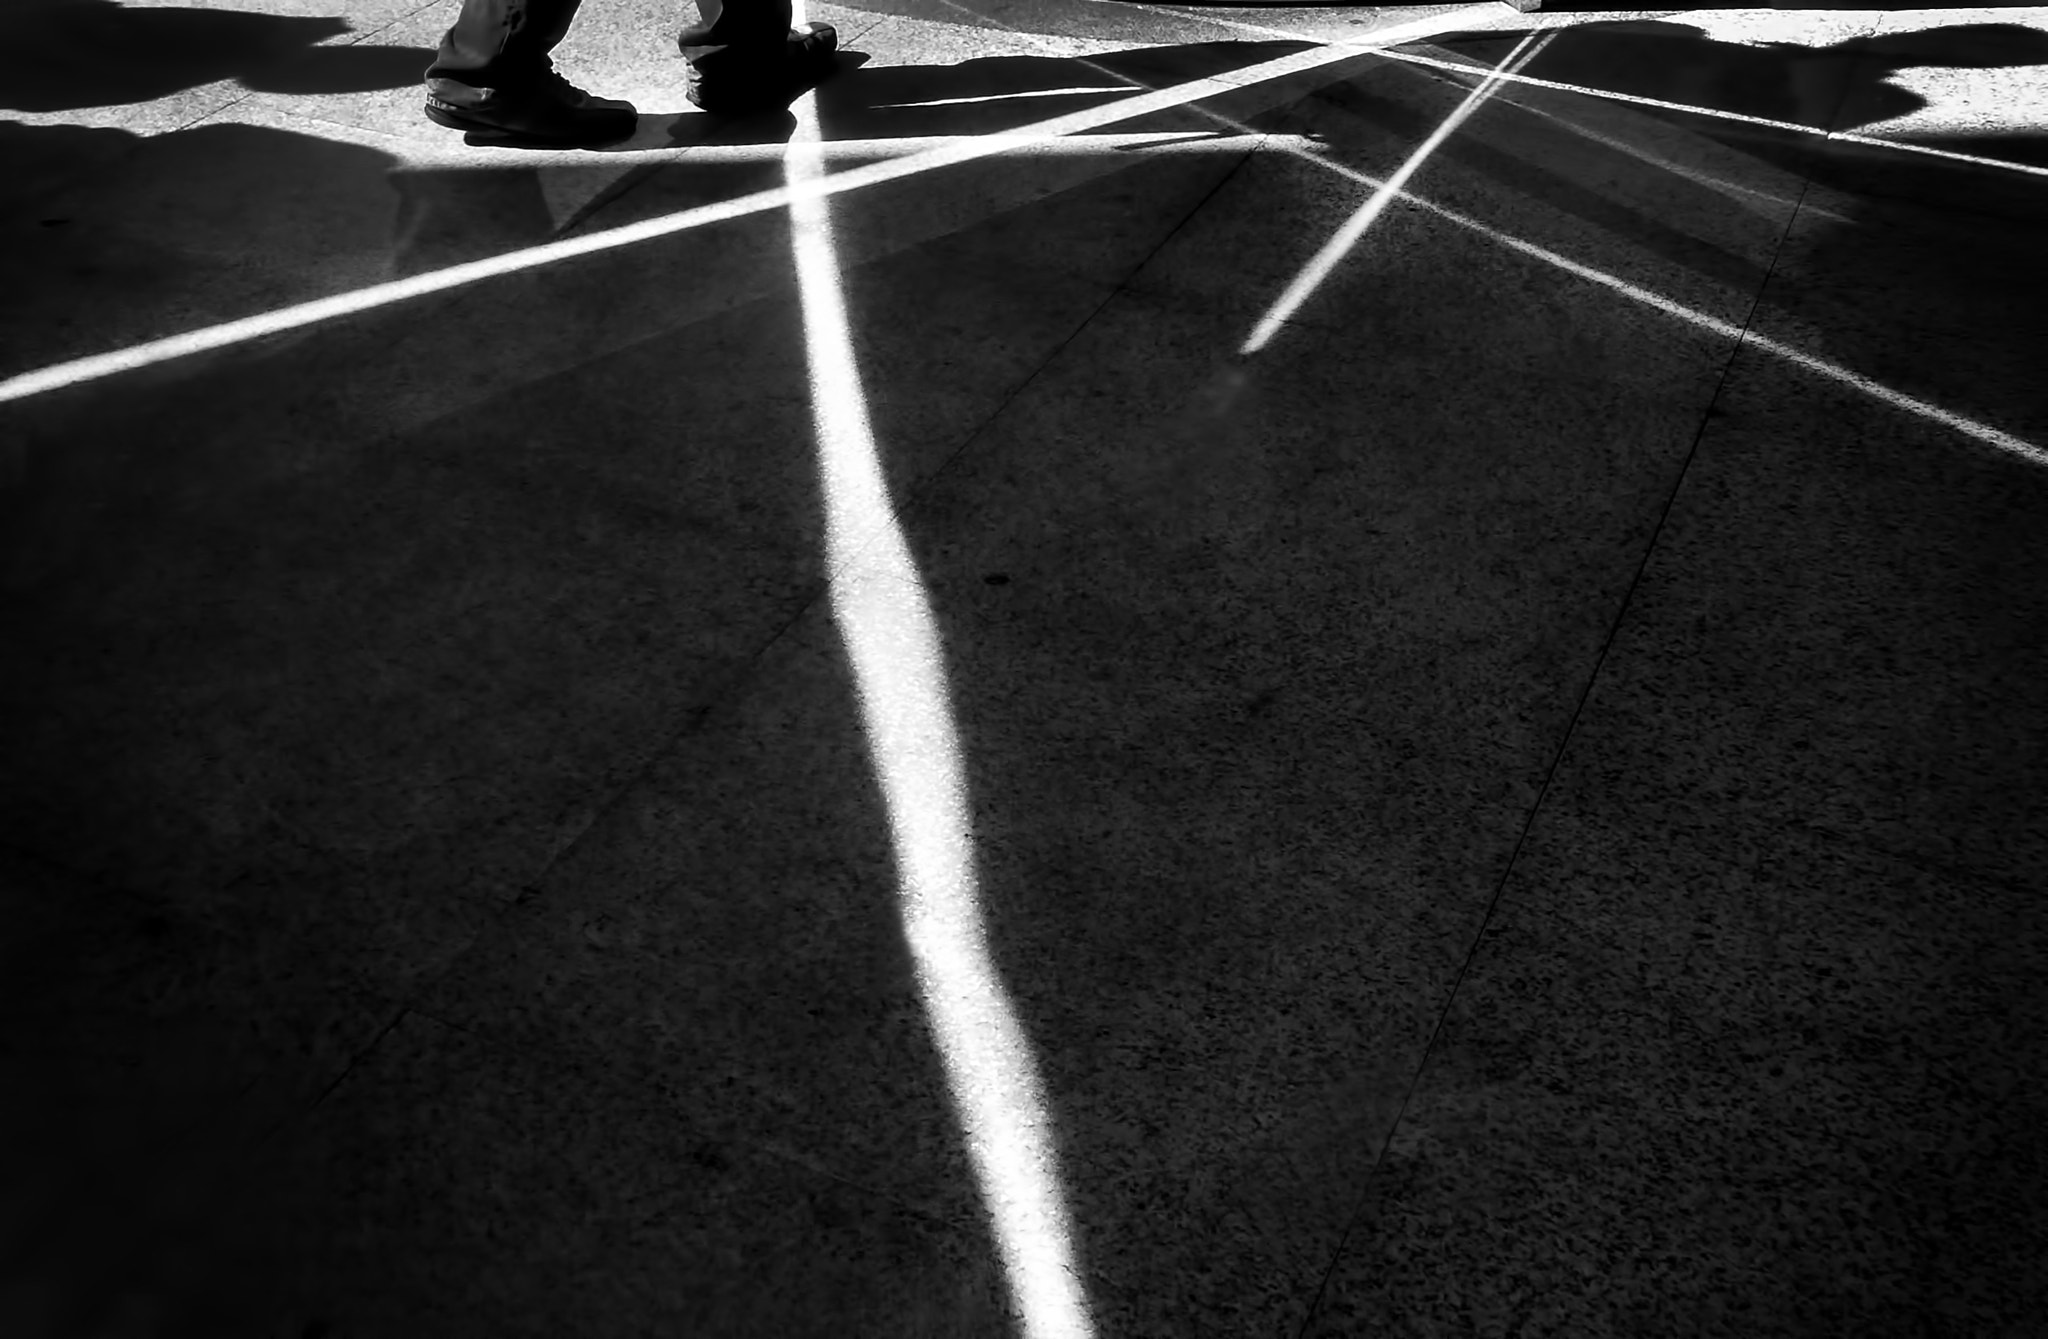 Photograph Streaks and Shadow by Henry Wong on 500px